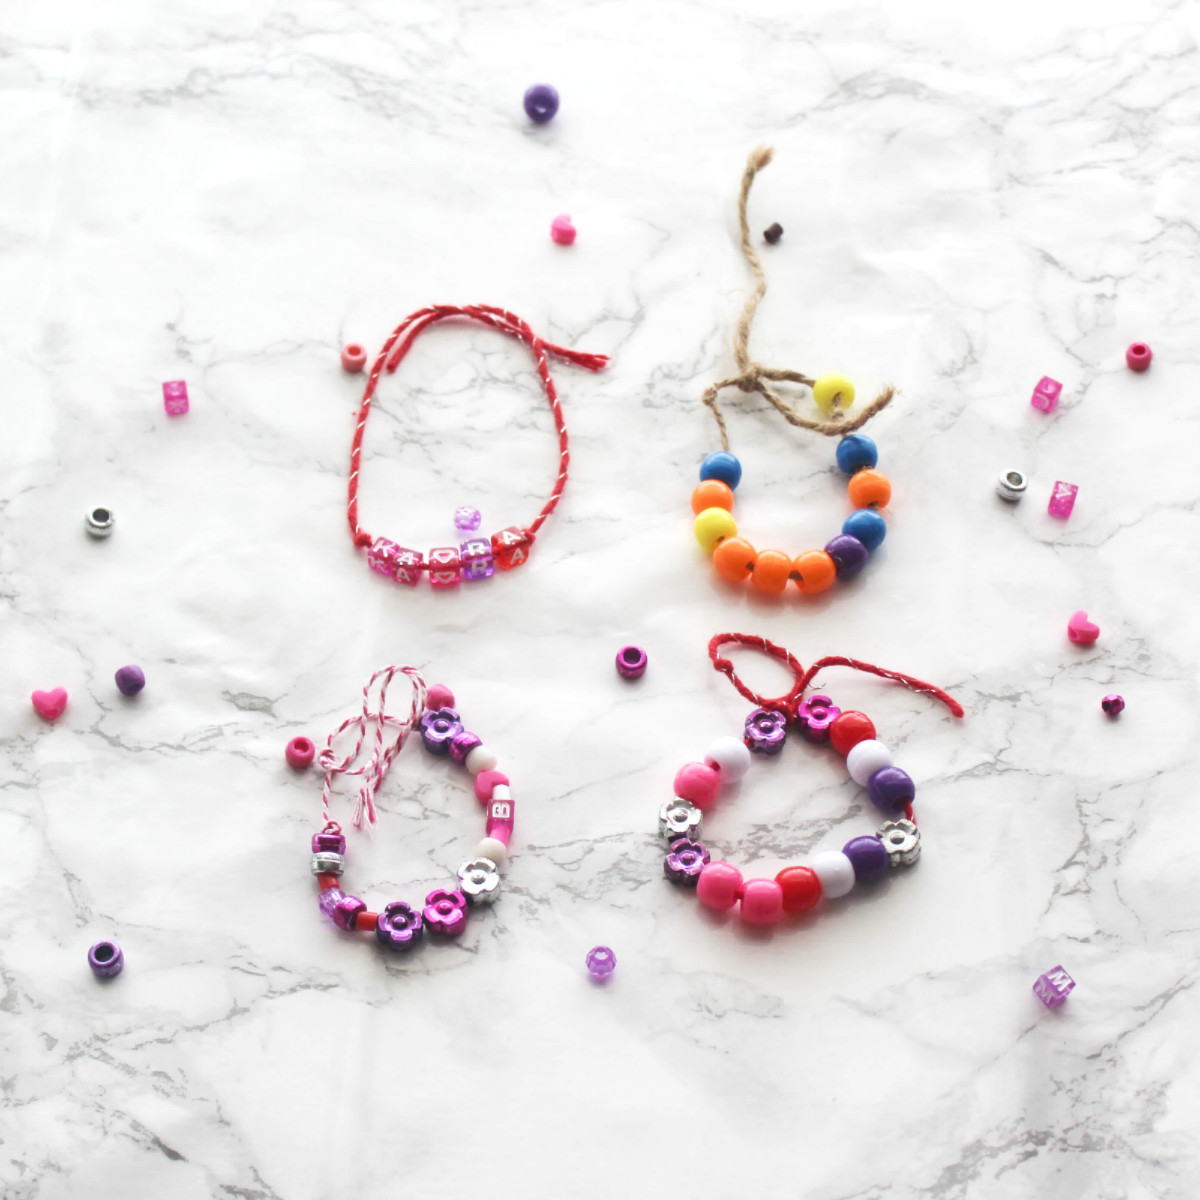 Friendship Bracelets With Beads  Beaded Bracelets and Necklaces for Kids – At Home With Zan